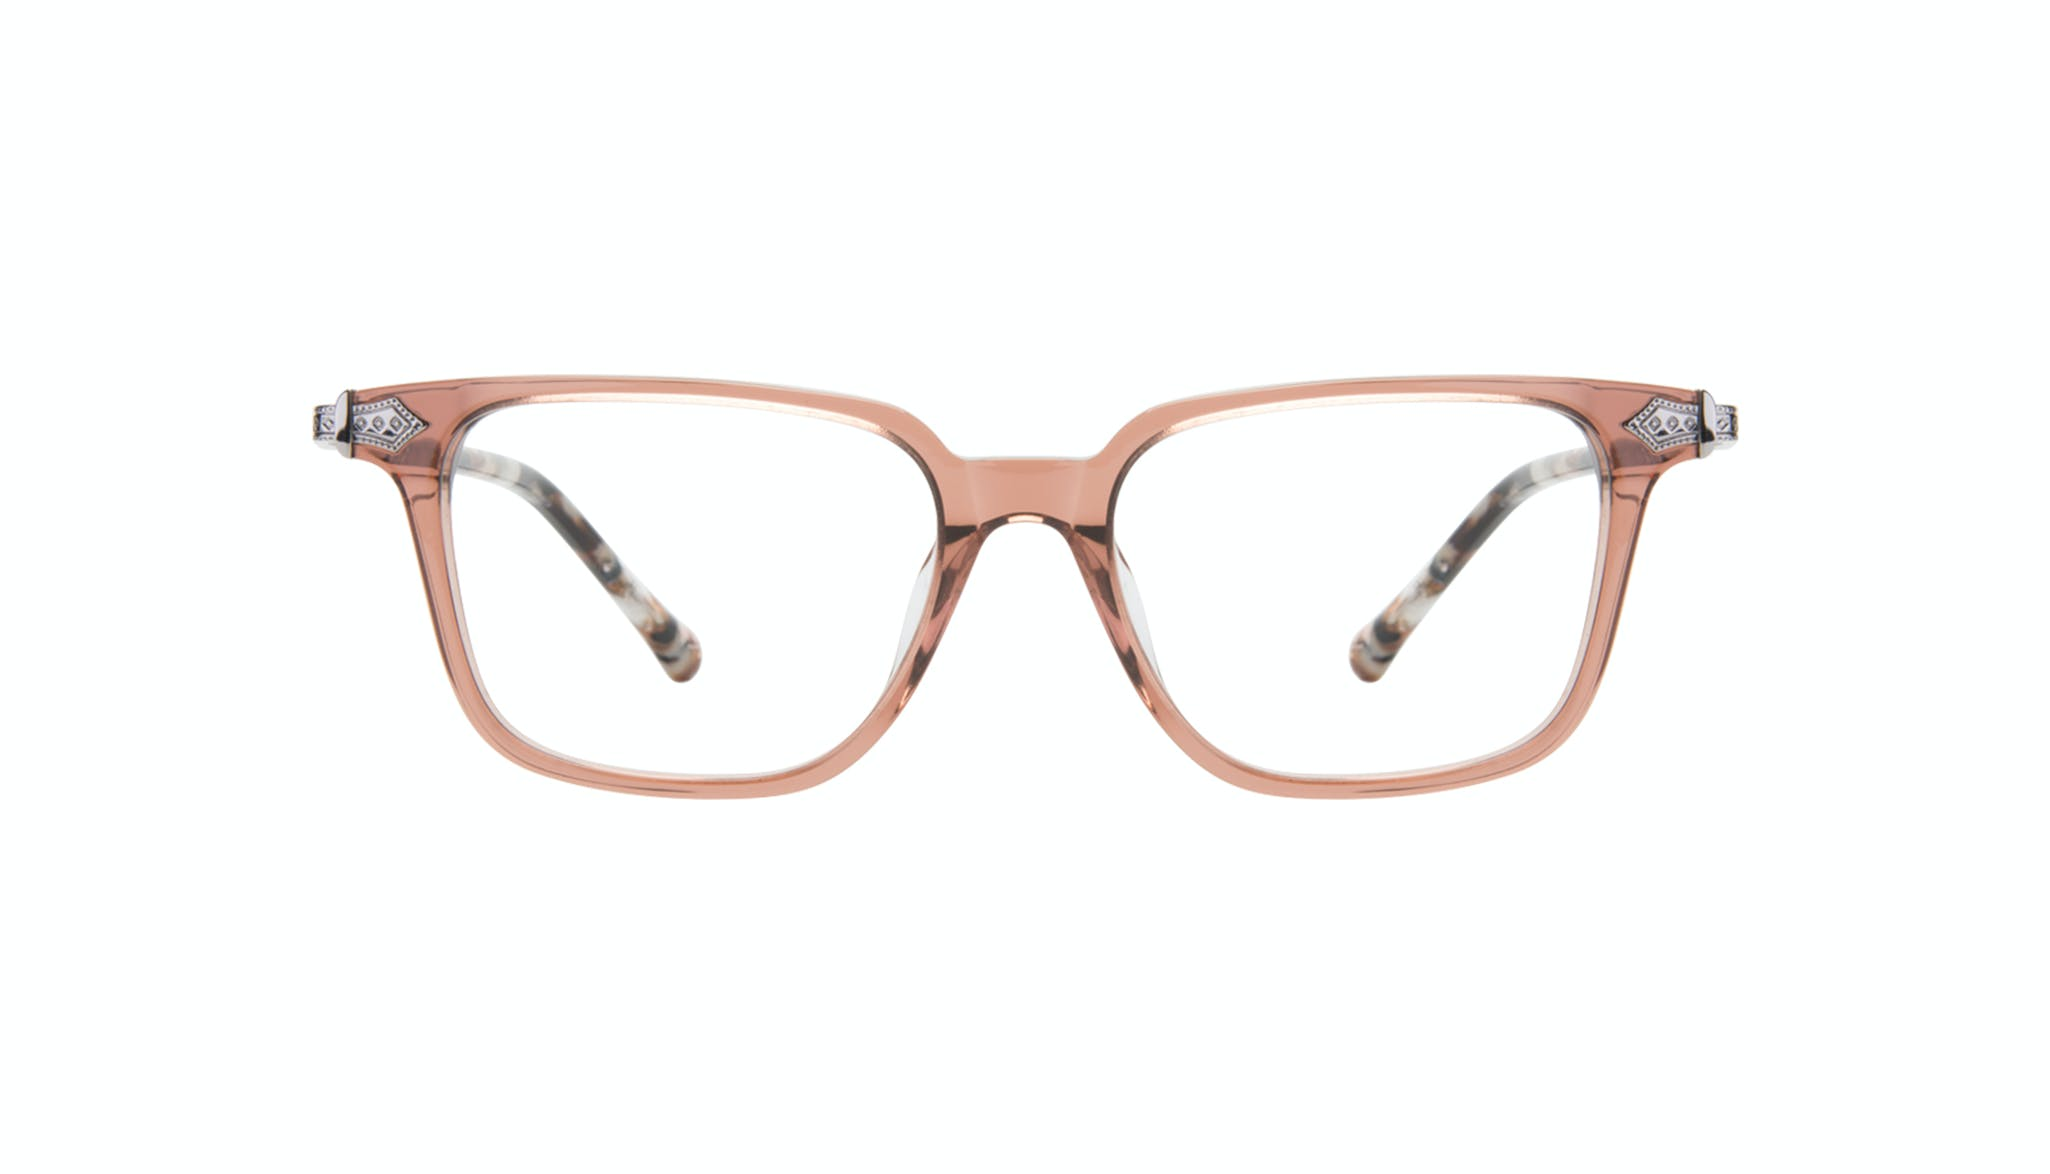 Affordable Fashion Glasses Square Eyeglasses Women Twinkle Truffle Rose